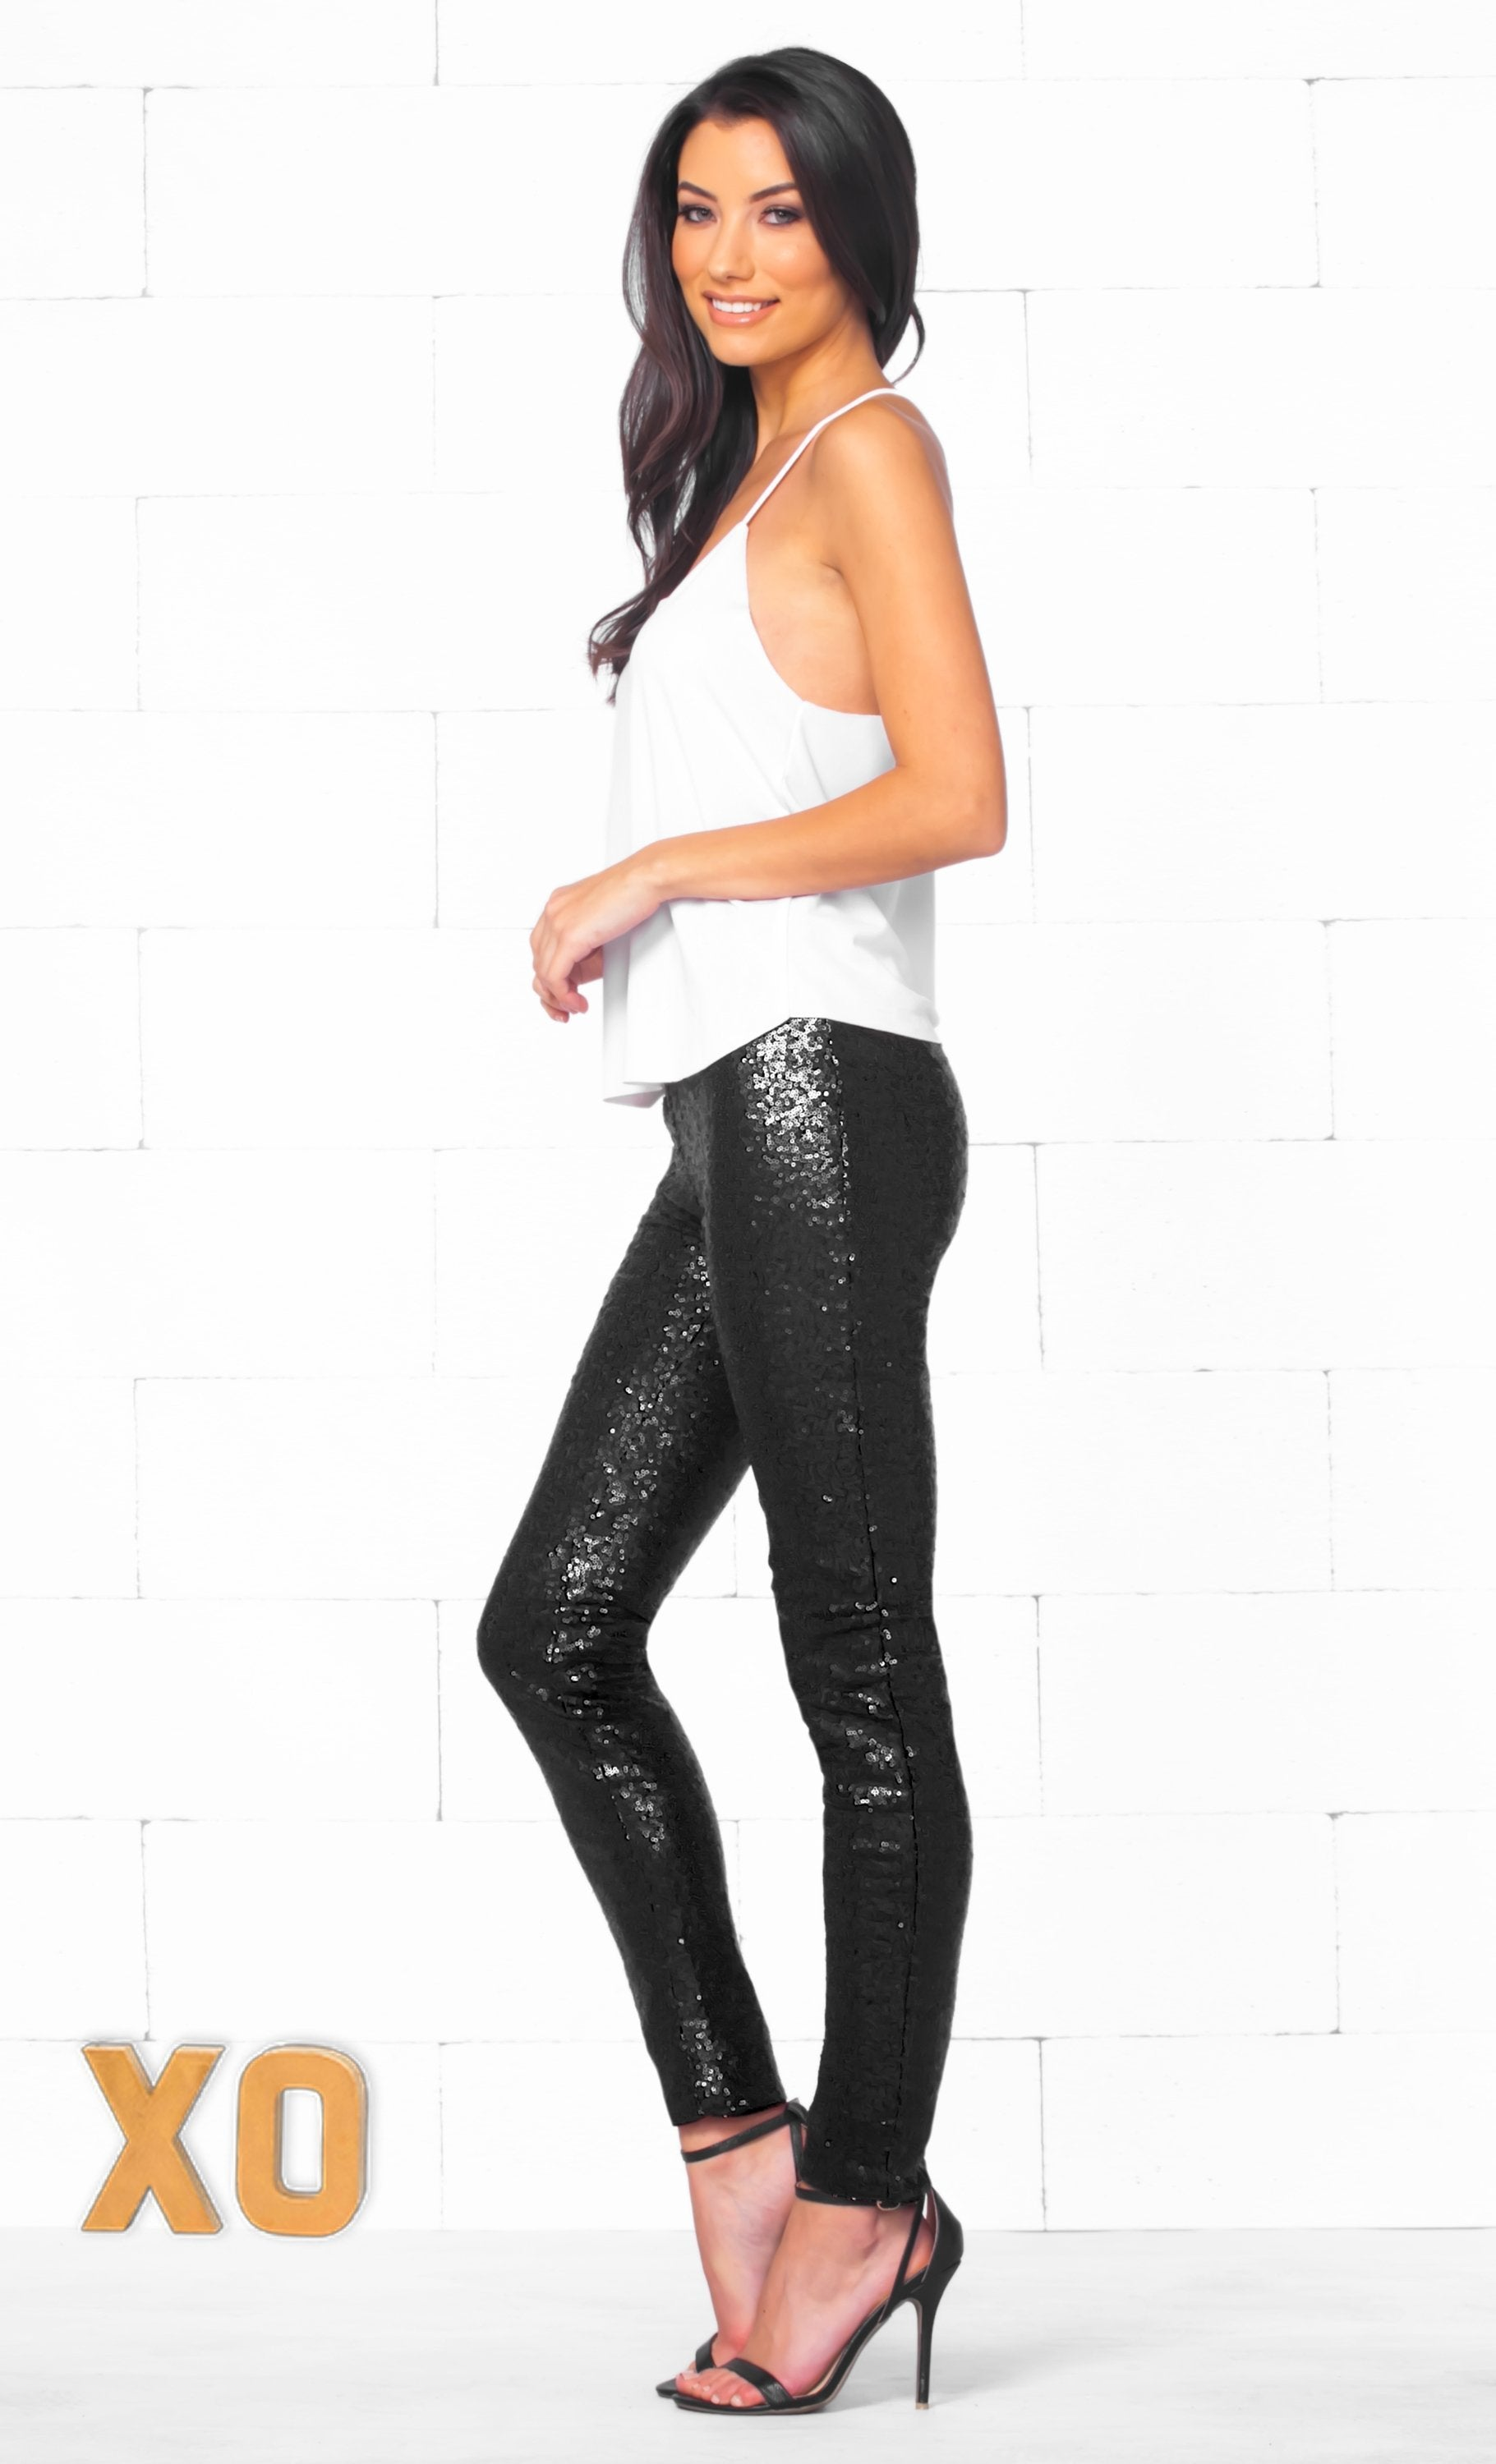 Indie XO Get Your Sparkle On Black Sequin Stretch Leggings with Elastic Waistband - Sold Out